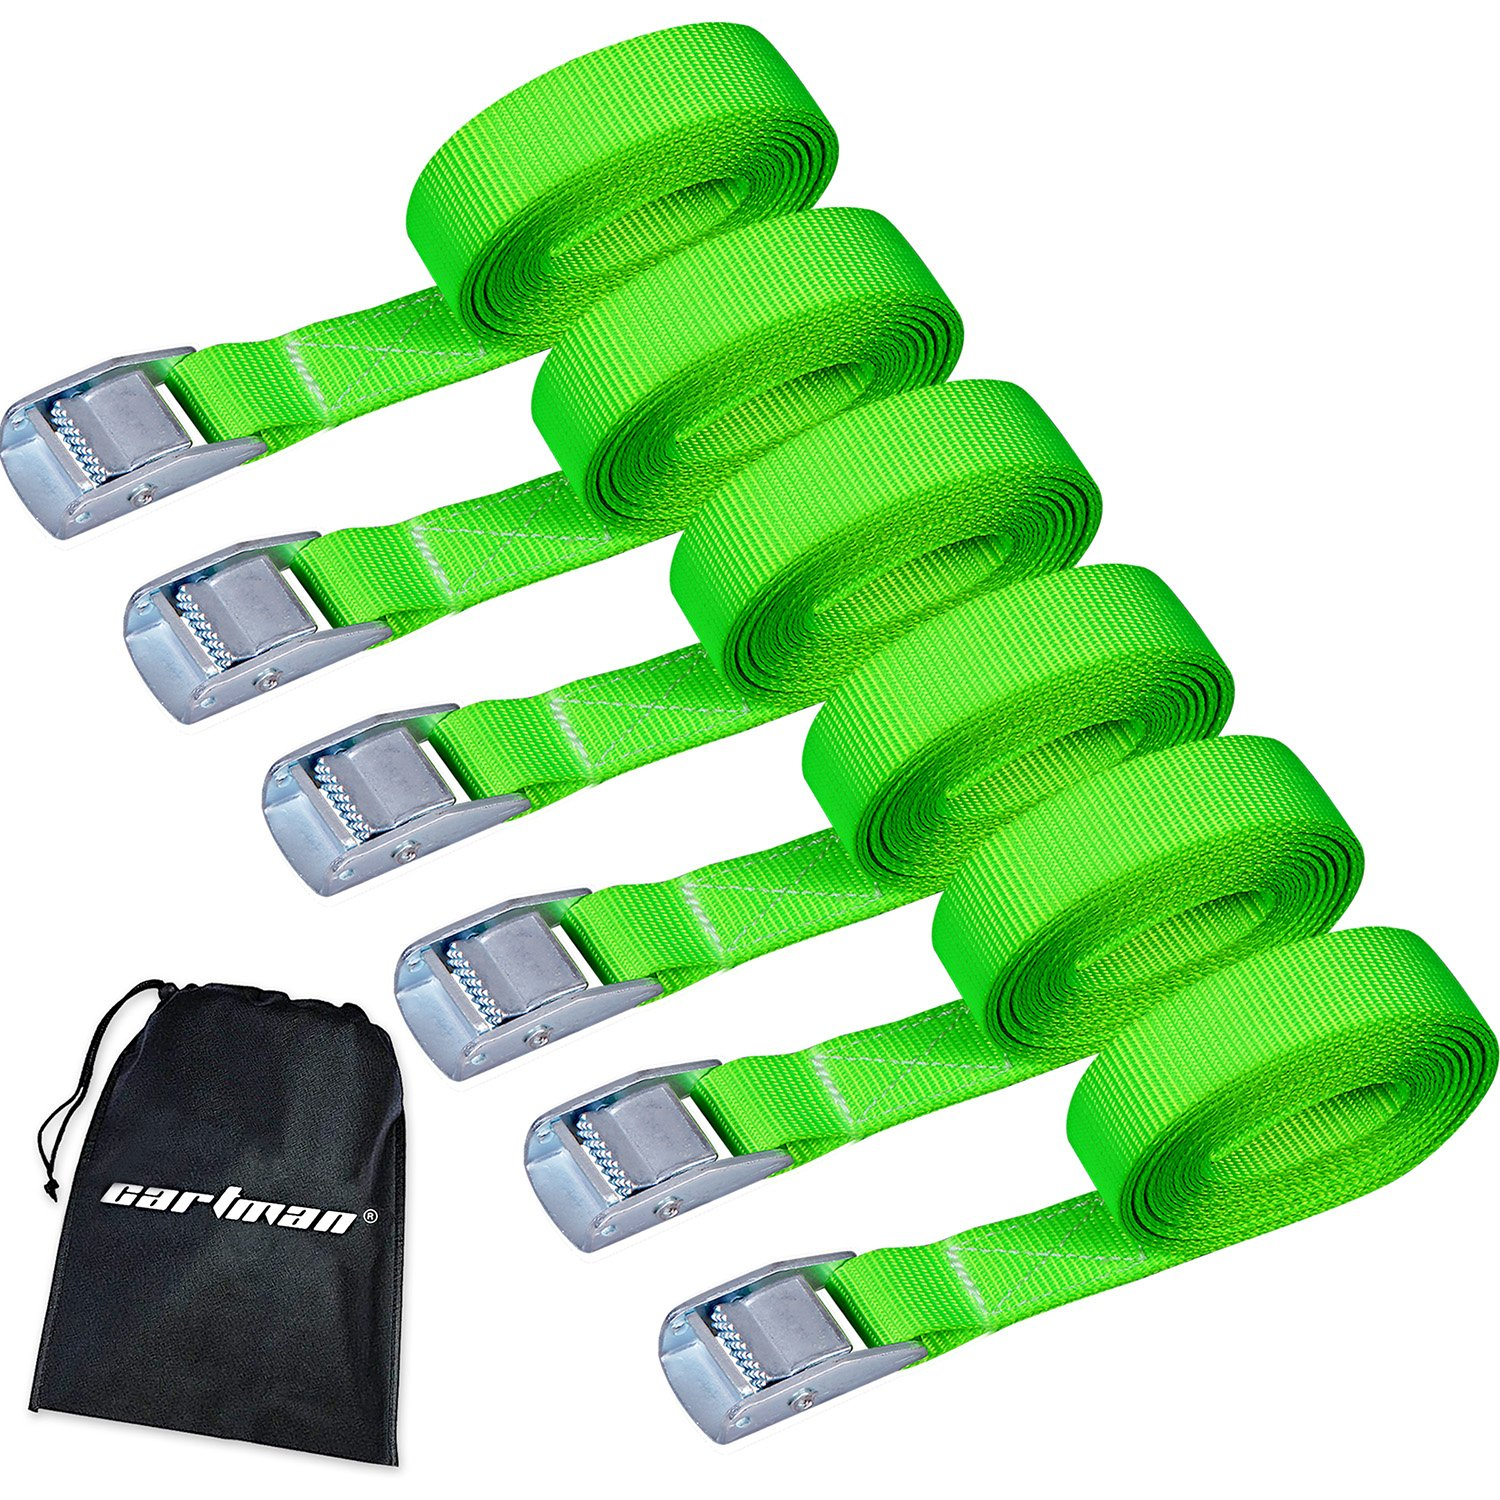 CARTMAN Lashing Straps up to 600lbs, 6pk in Carry Bag, Green Color by CARTMAN